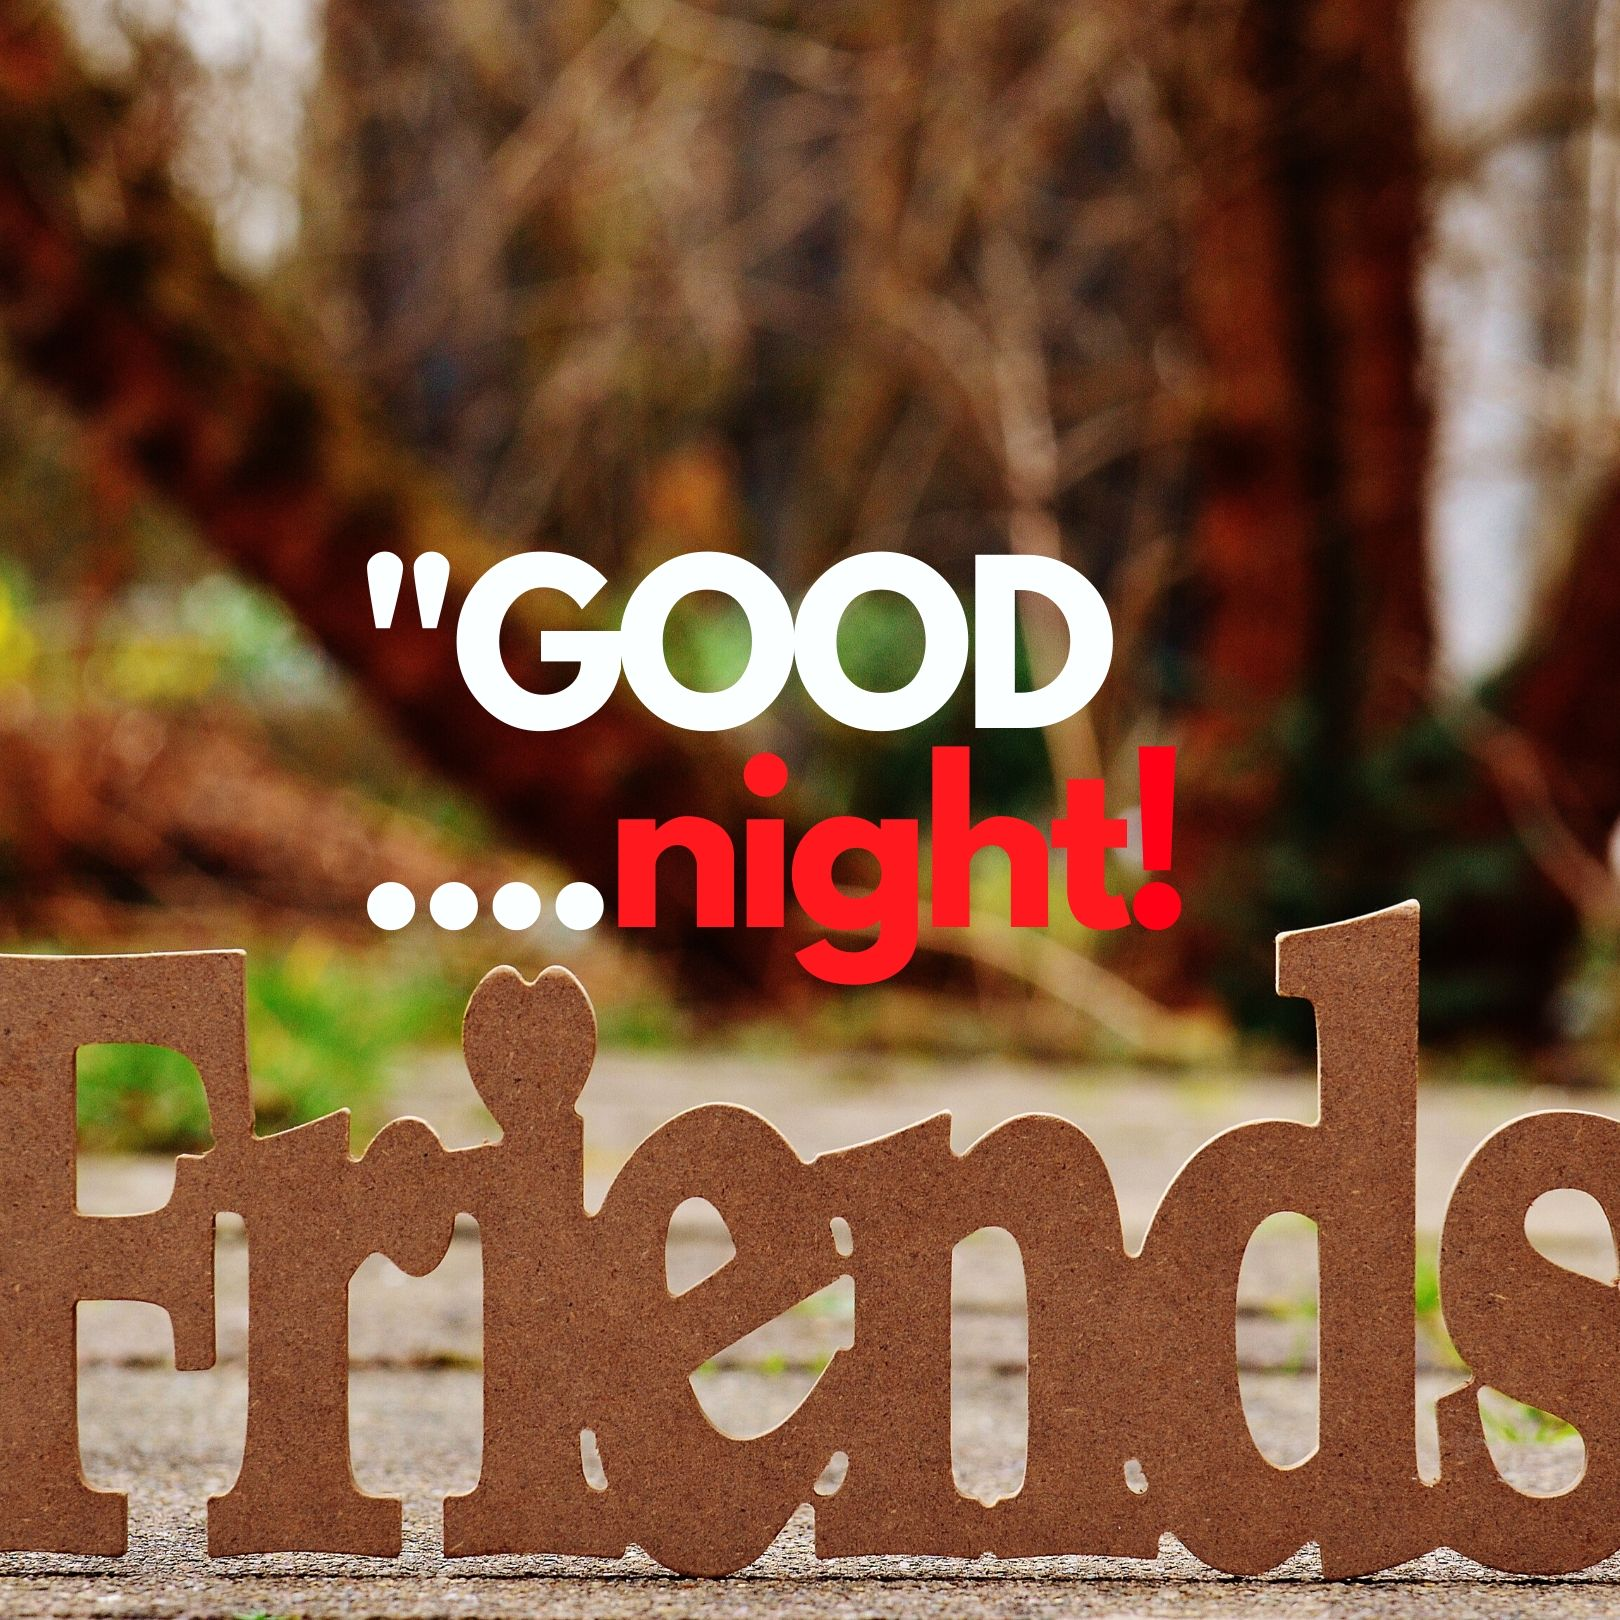 Good Night friends hd images full HD free download.